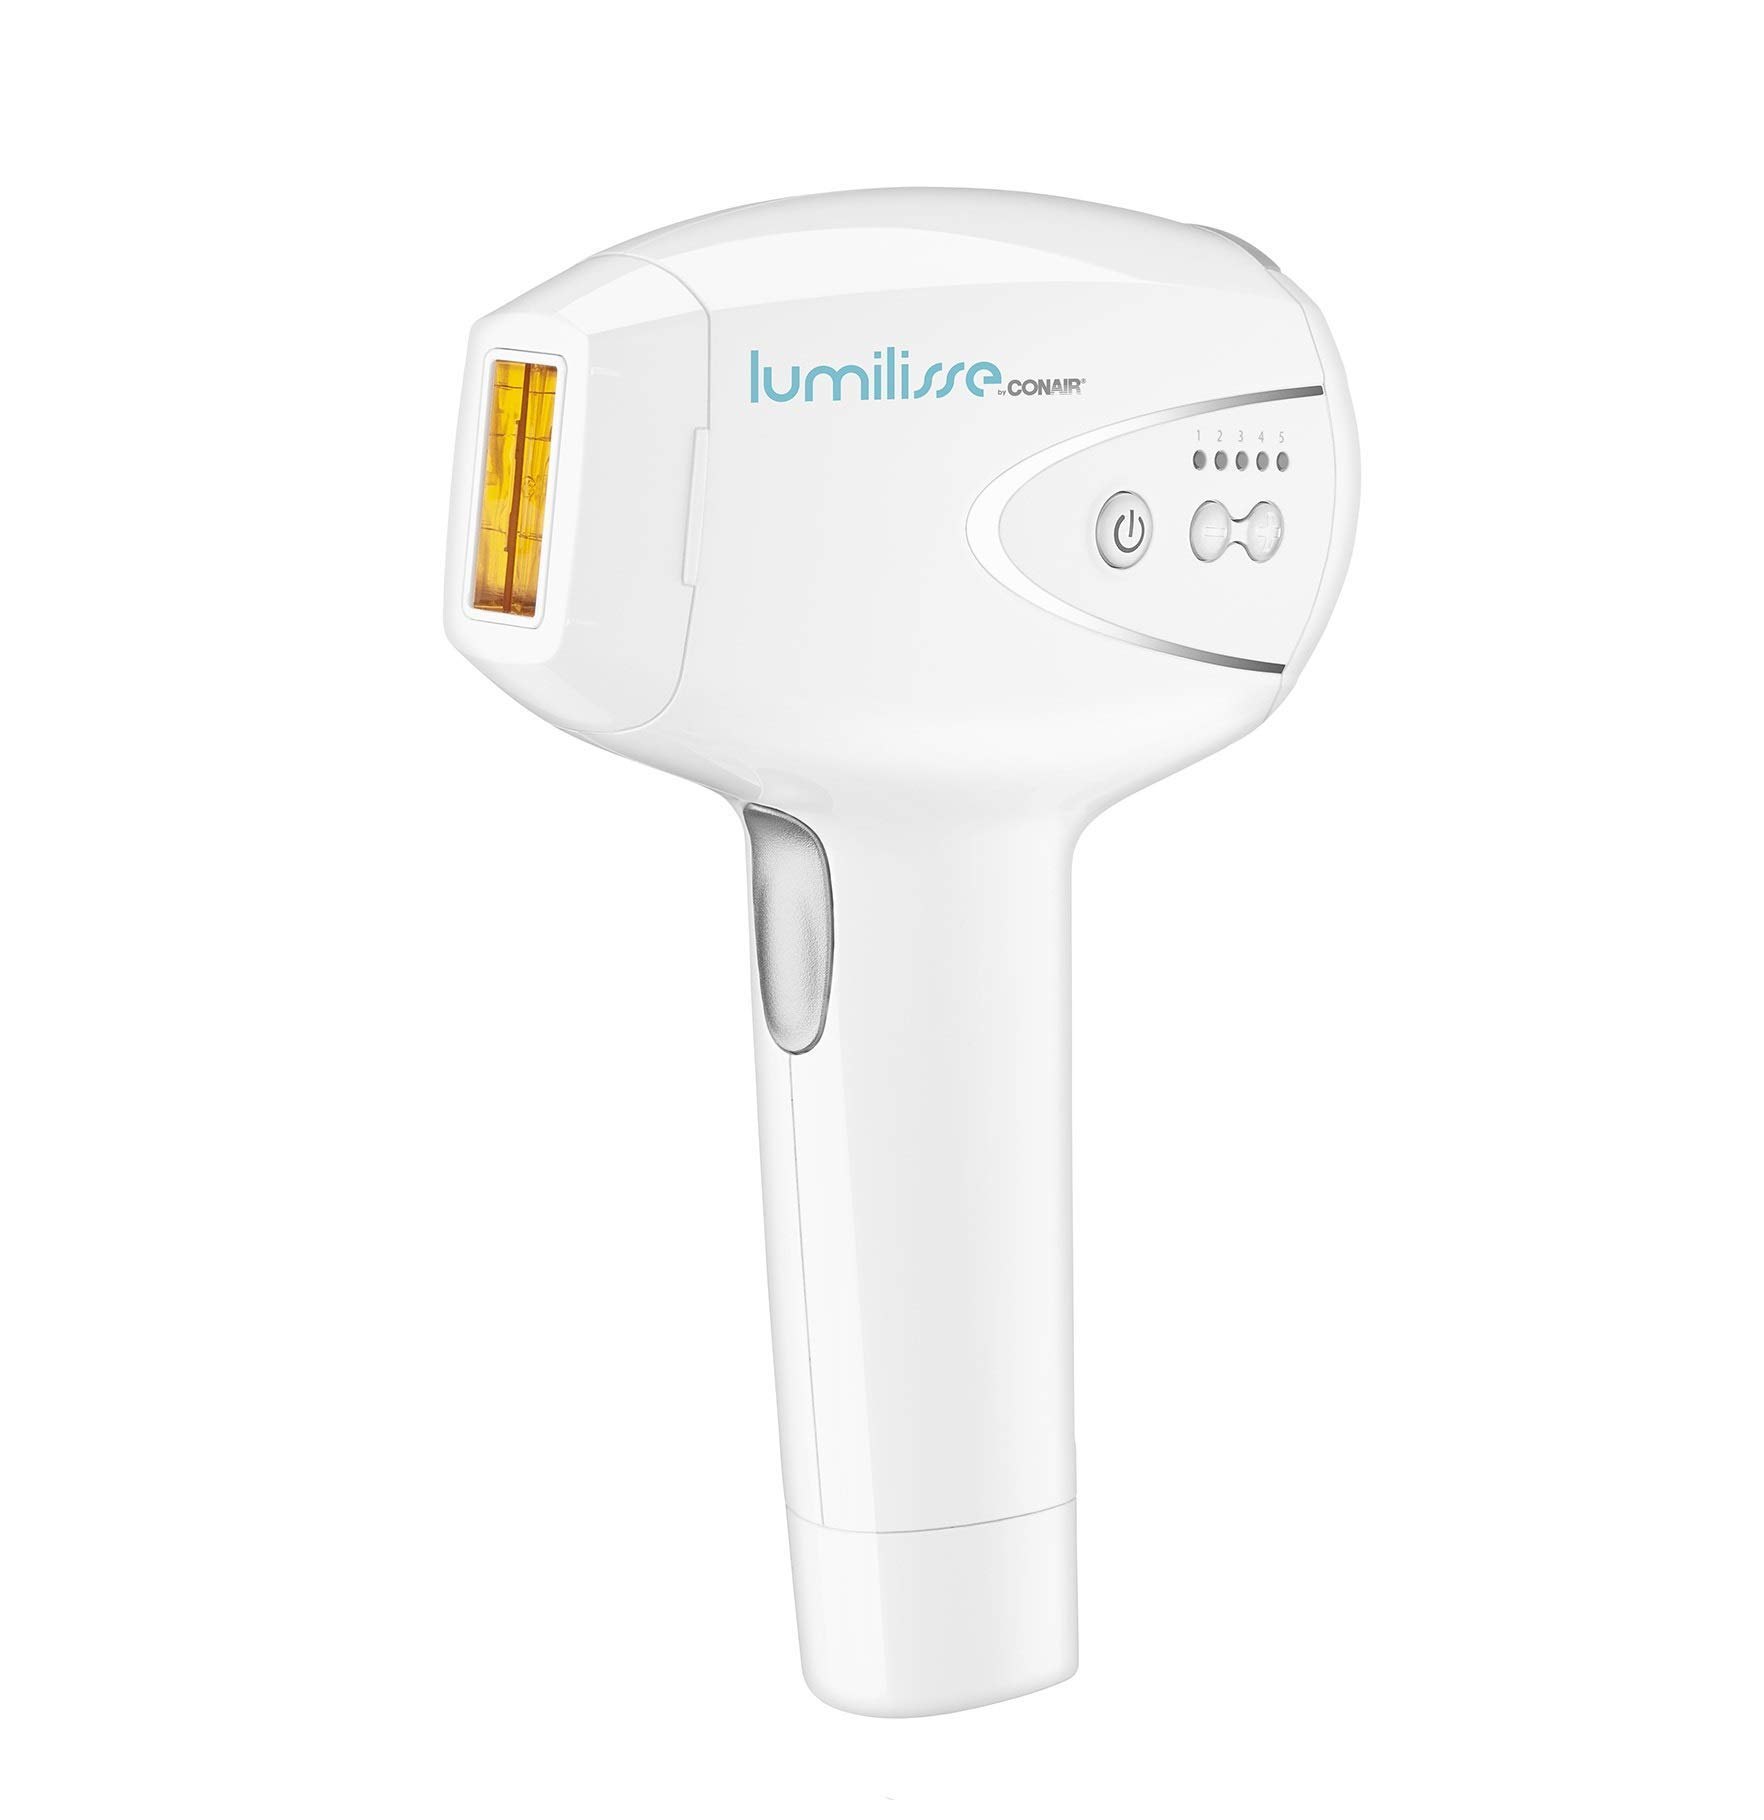 Lumilisse by Conair Hair Removal Device, Intense Pulsed Light (IPL) Technology ~ FDA Cleared - 61j3jGEC9wL - Lumilisse by Conair Hair Removal Device, Intense Pulsed Light (IPL) Technology ~ FDA Cleared